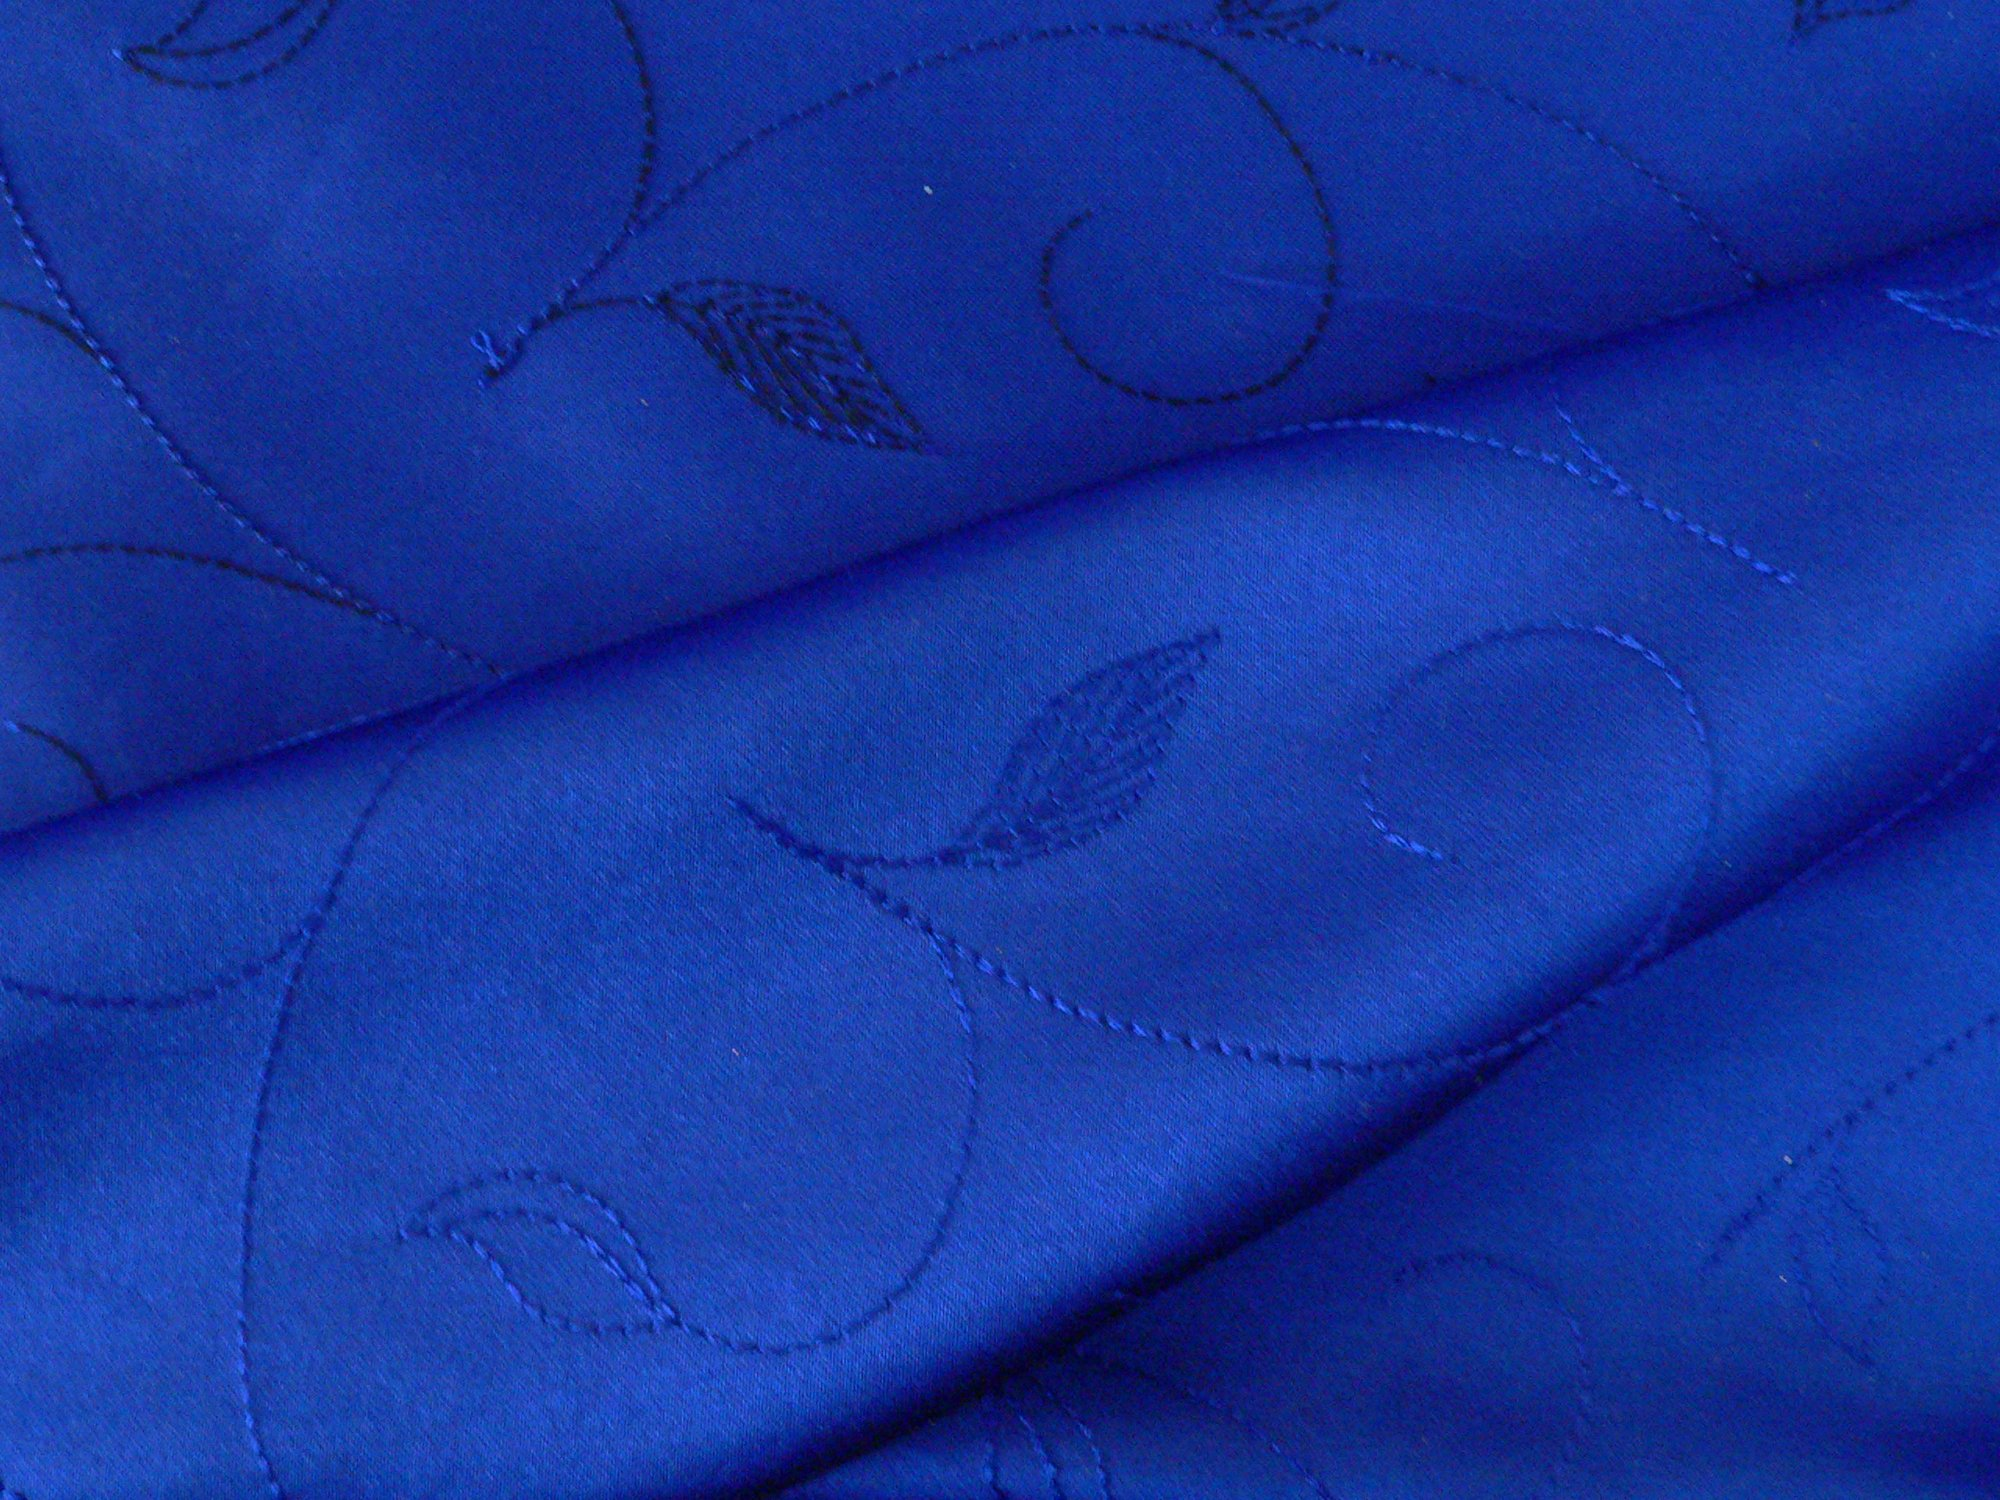 Satin, embroidered, double scalloped edge, royal blue